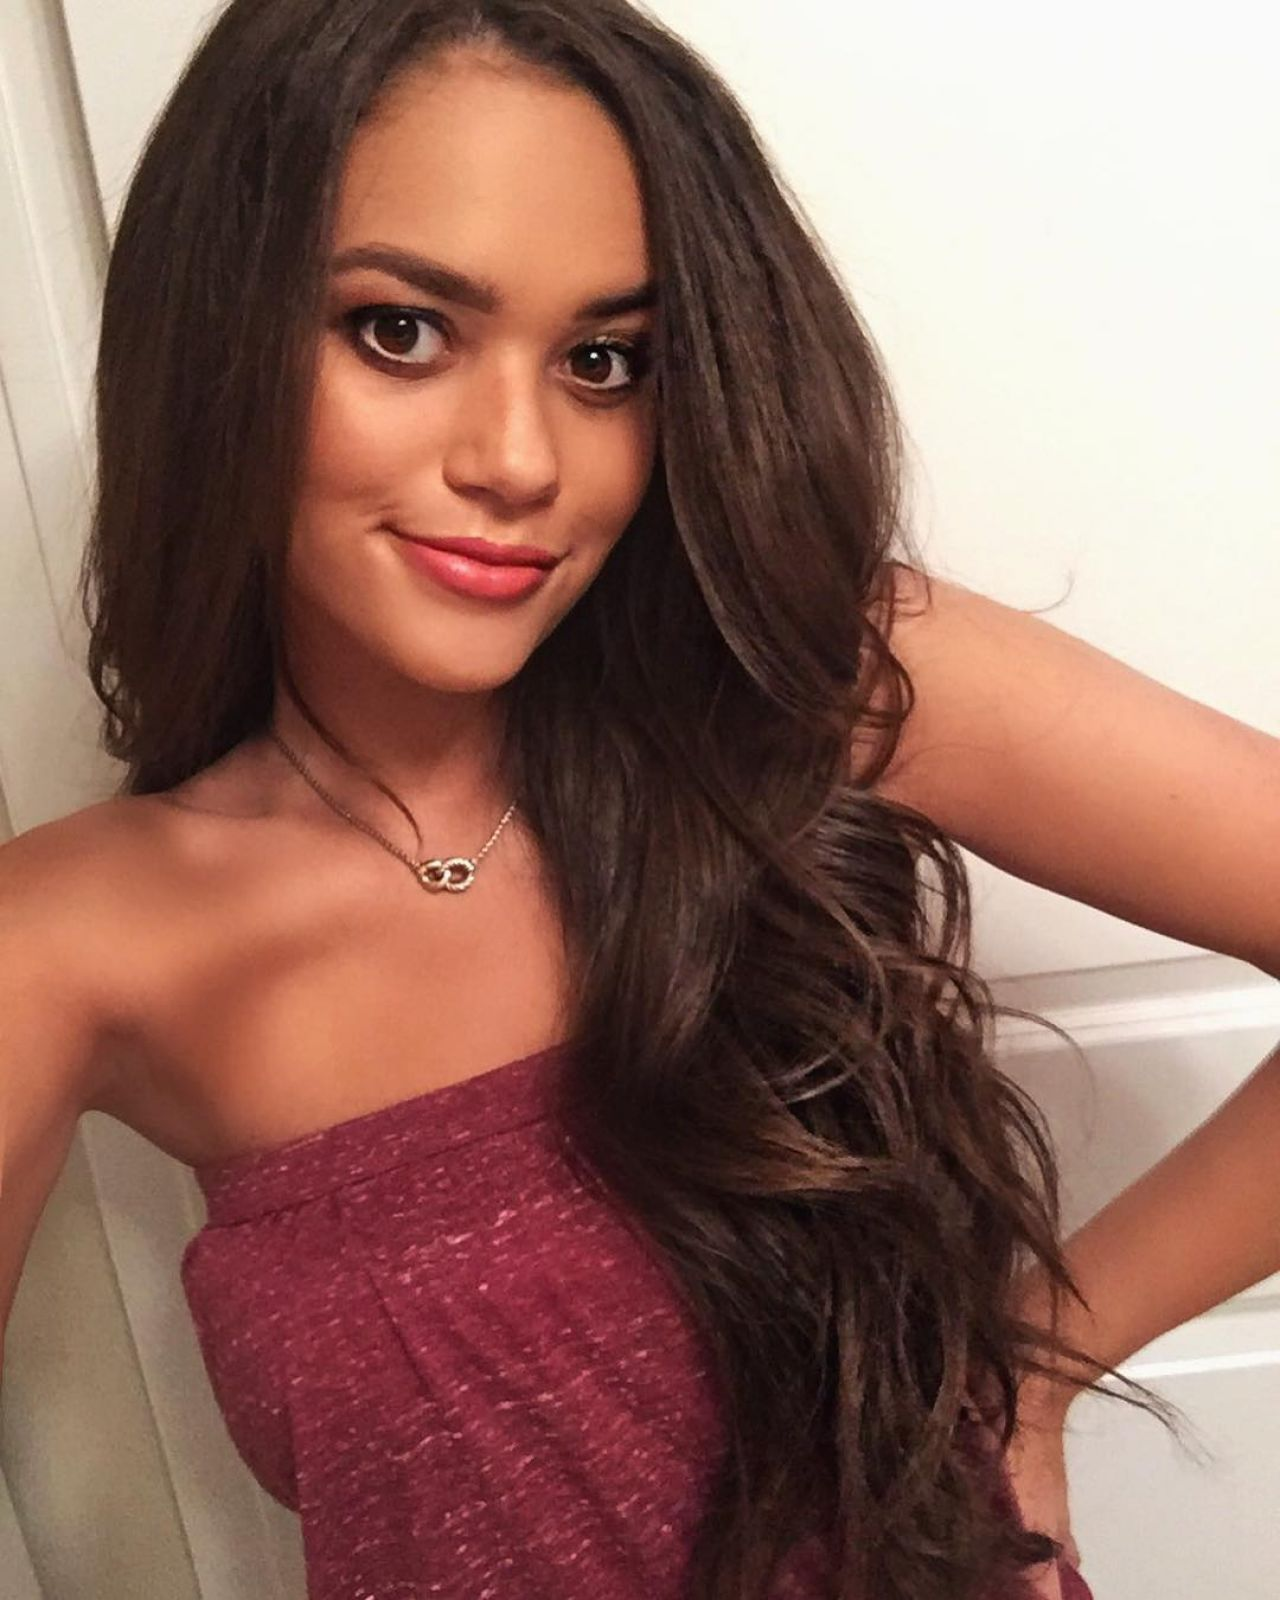 madison pettis 2017 with straight hair - photo #20